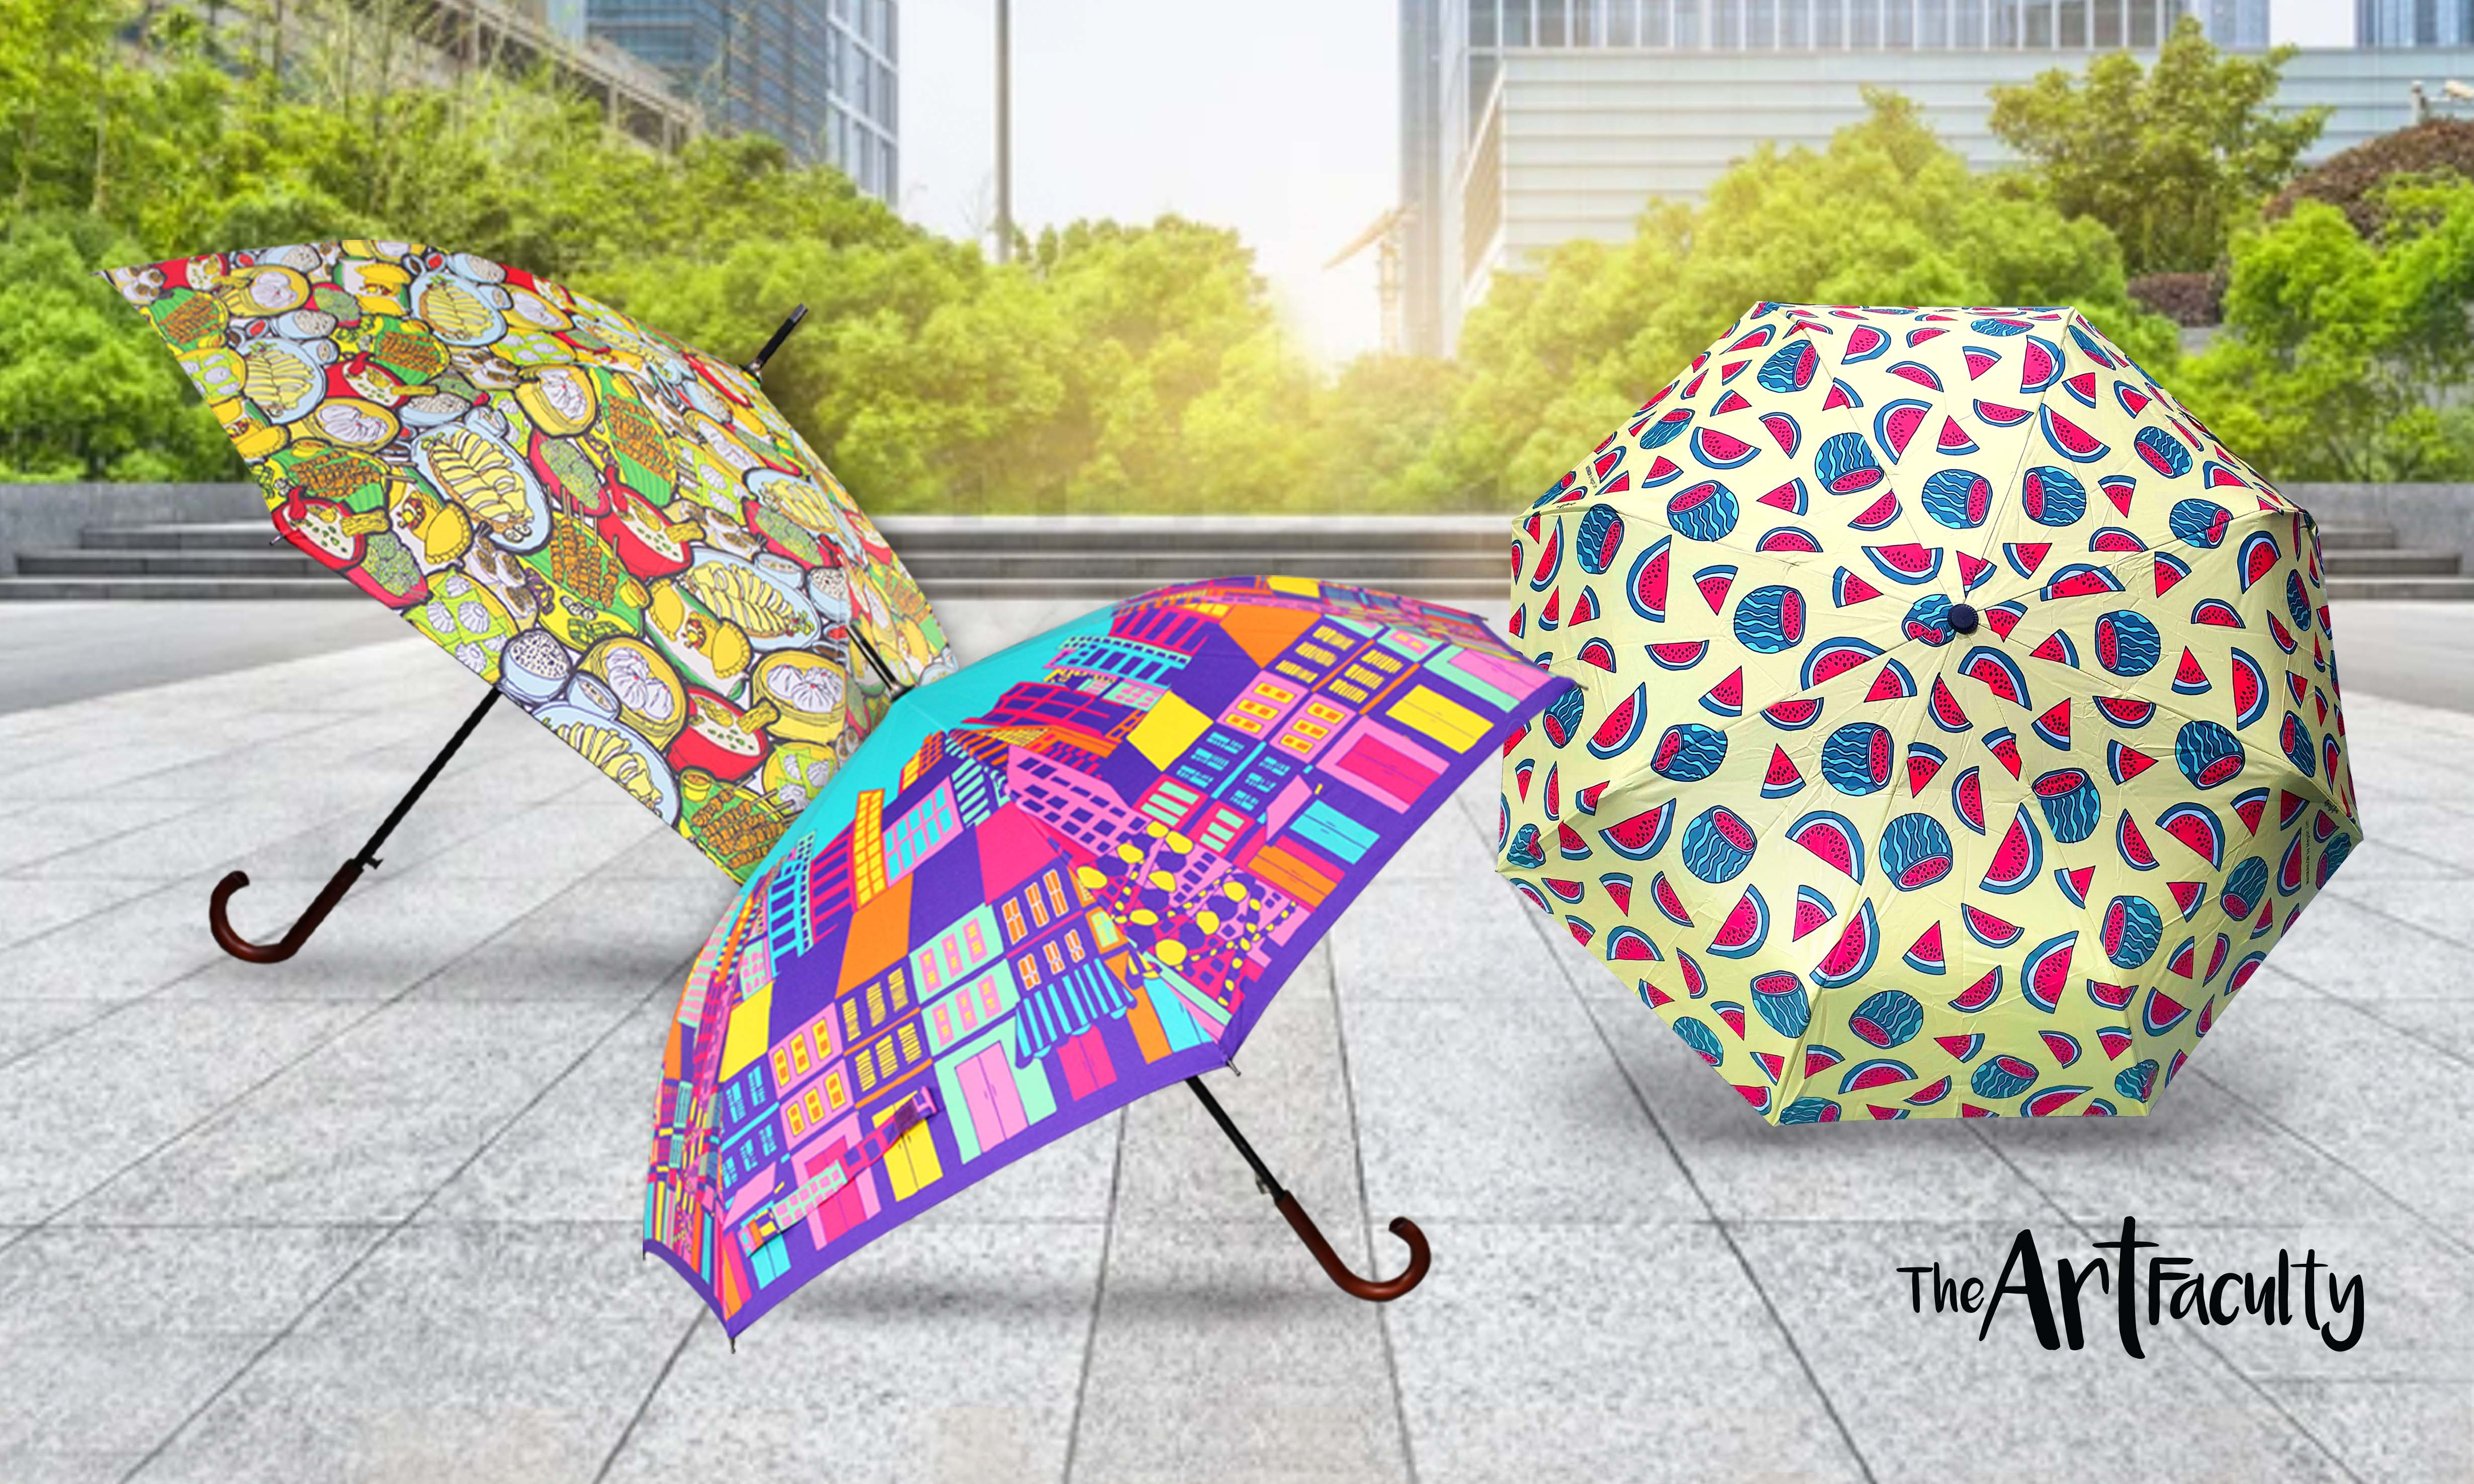 The Art Faculty – Artists Inspired Umbrellas